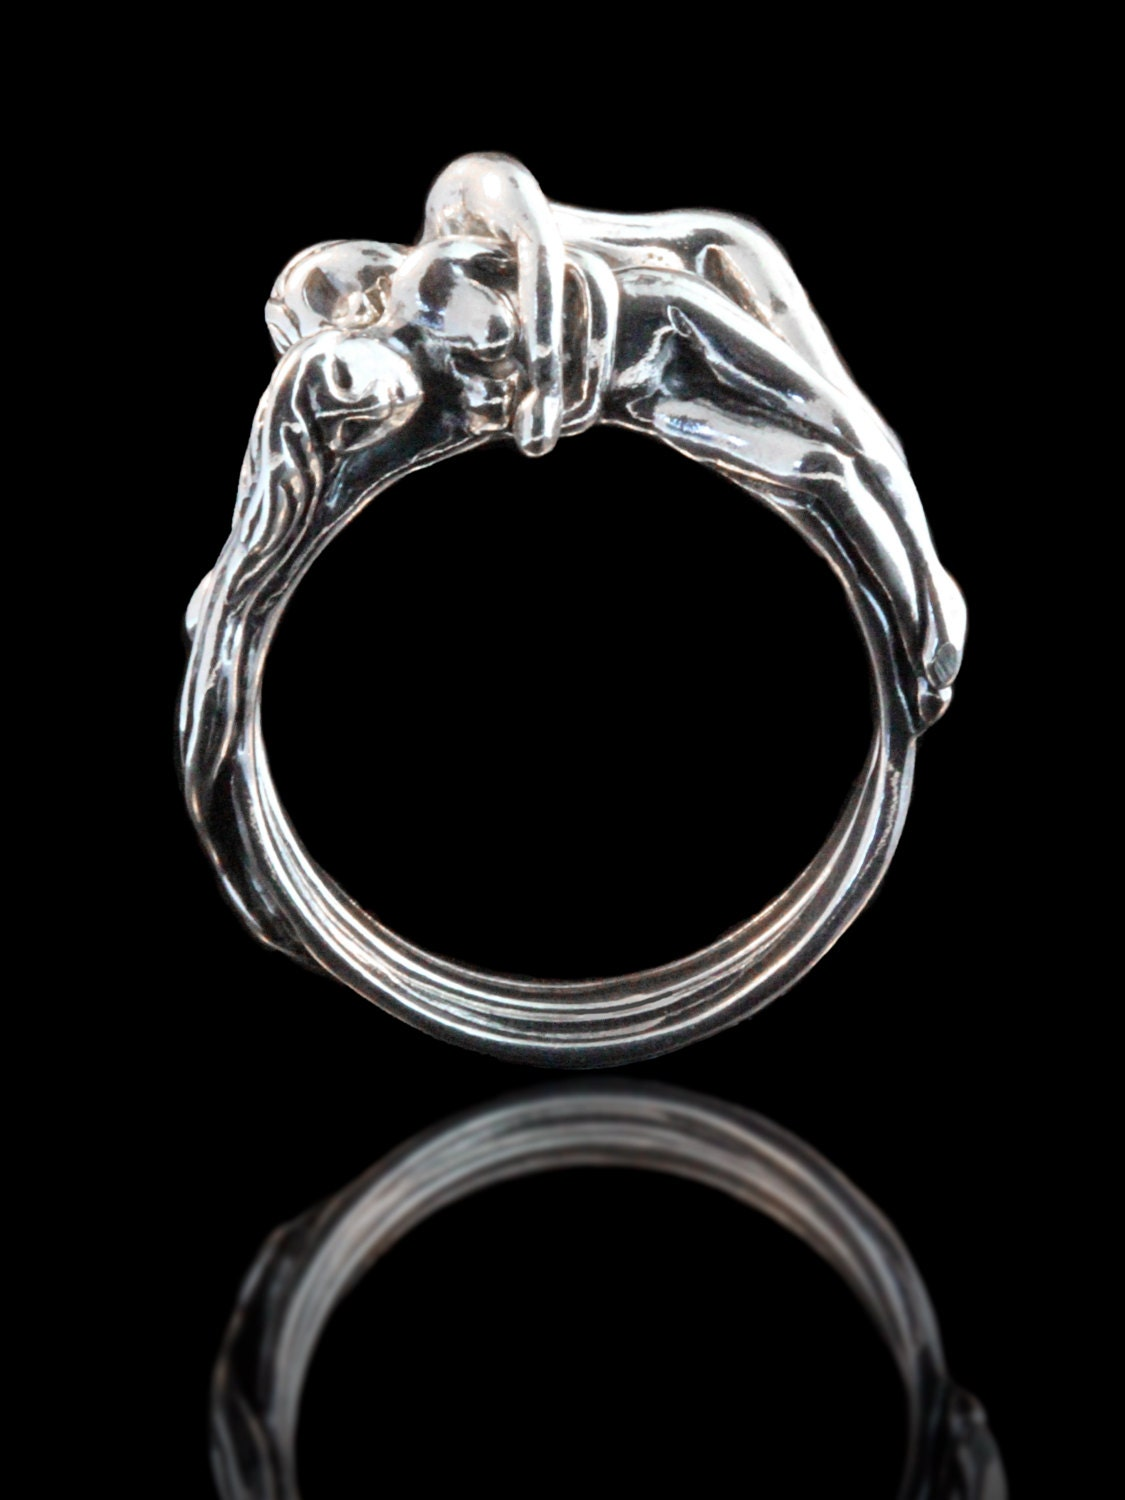 zoom - Puzzle Wedding Rings